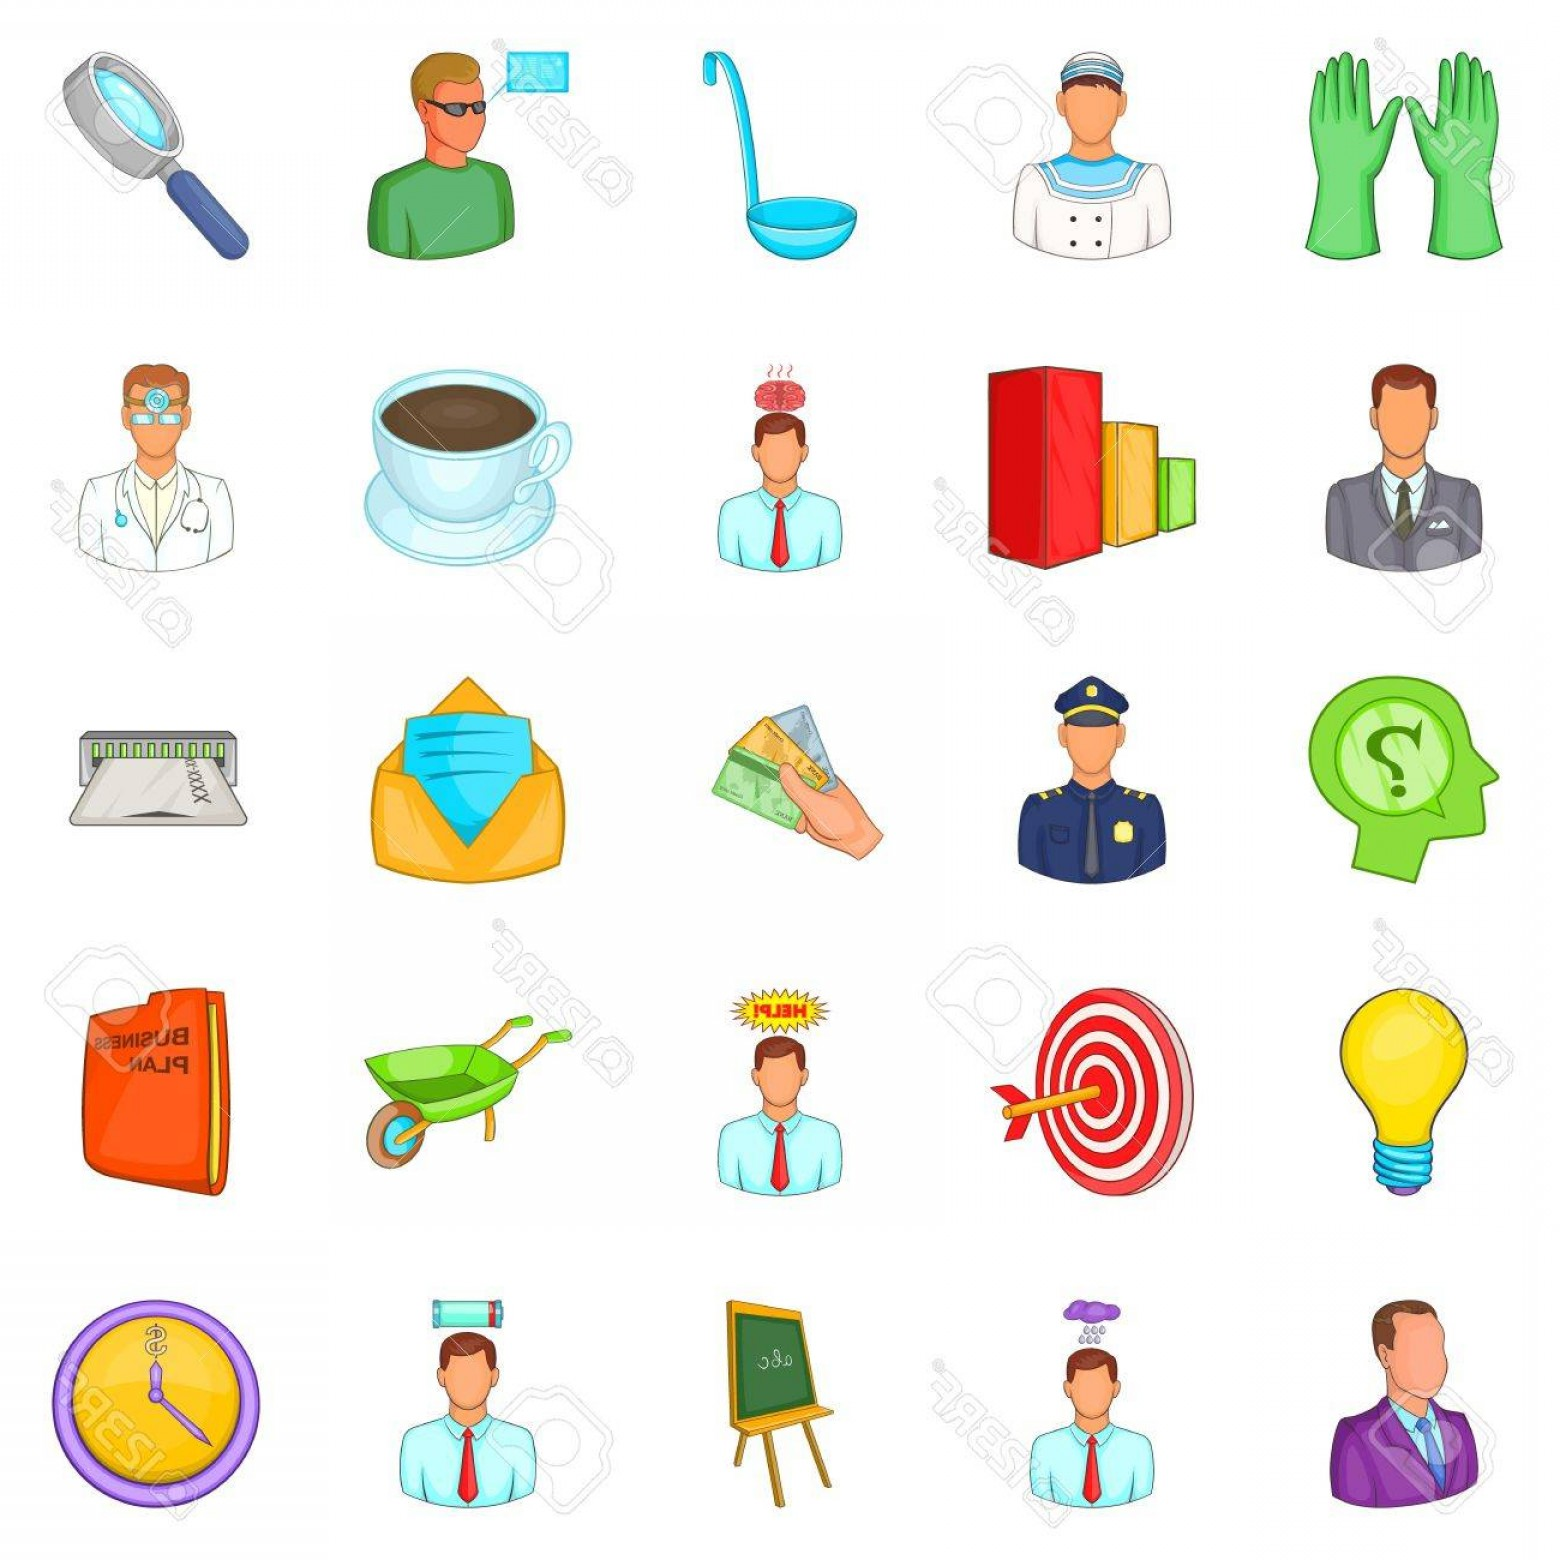 Vector Job Offer: Photostock Vector Job Offer Icons Set Cartoon Set Of Job Offer Vector Icons For Web Isolated On White Background